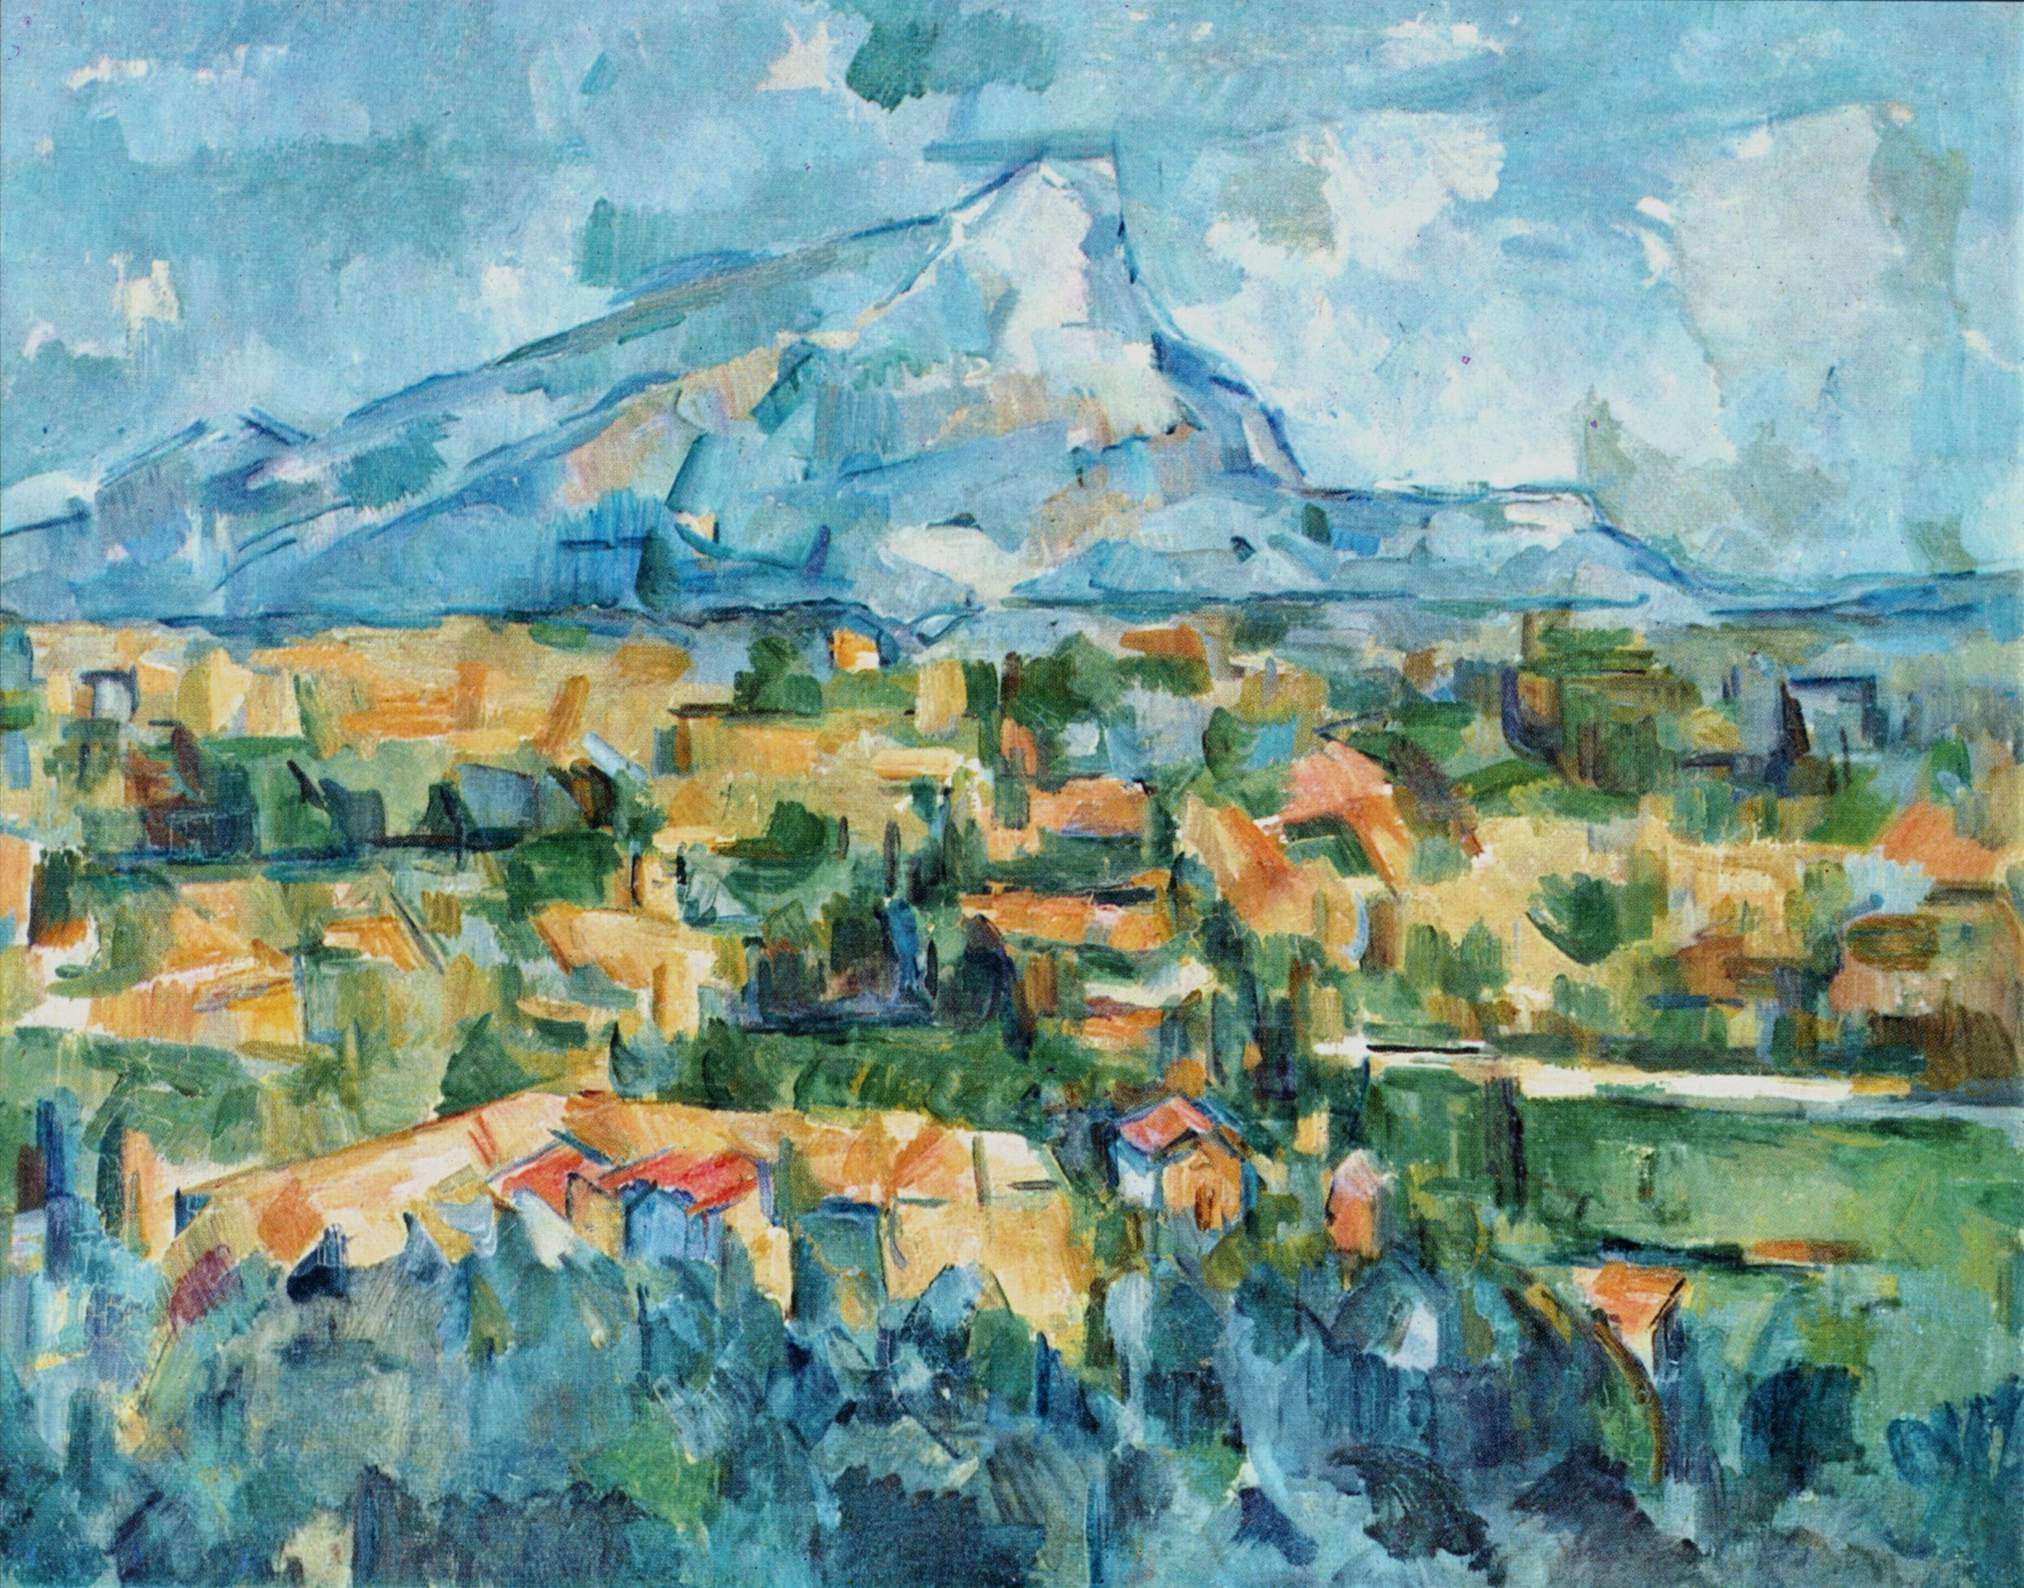 Abstract painting by Paul Cezanne from 1904, Montagne Sainte-Victoire